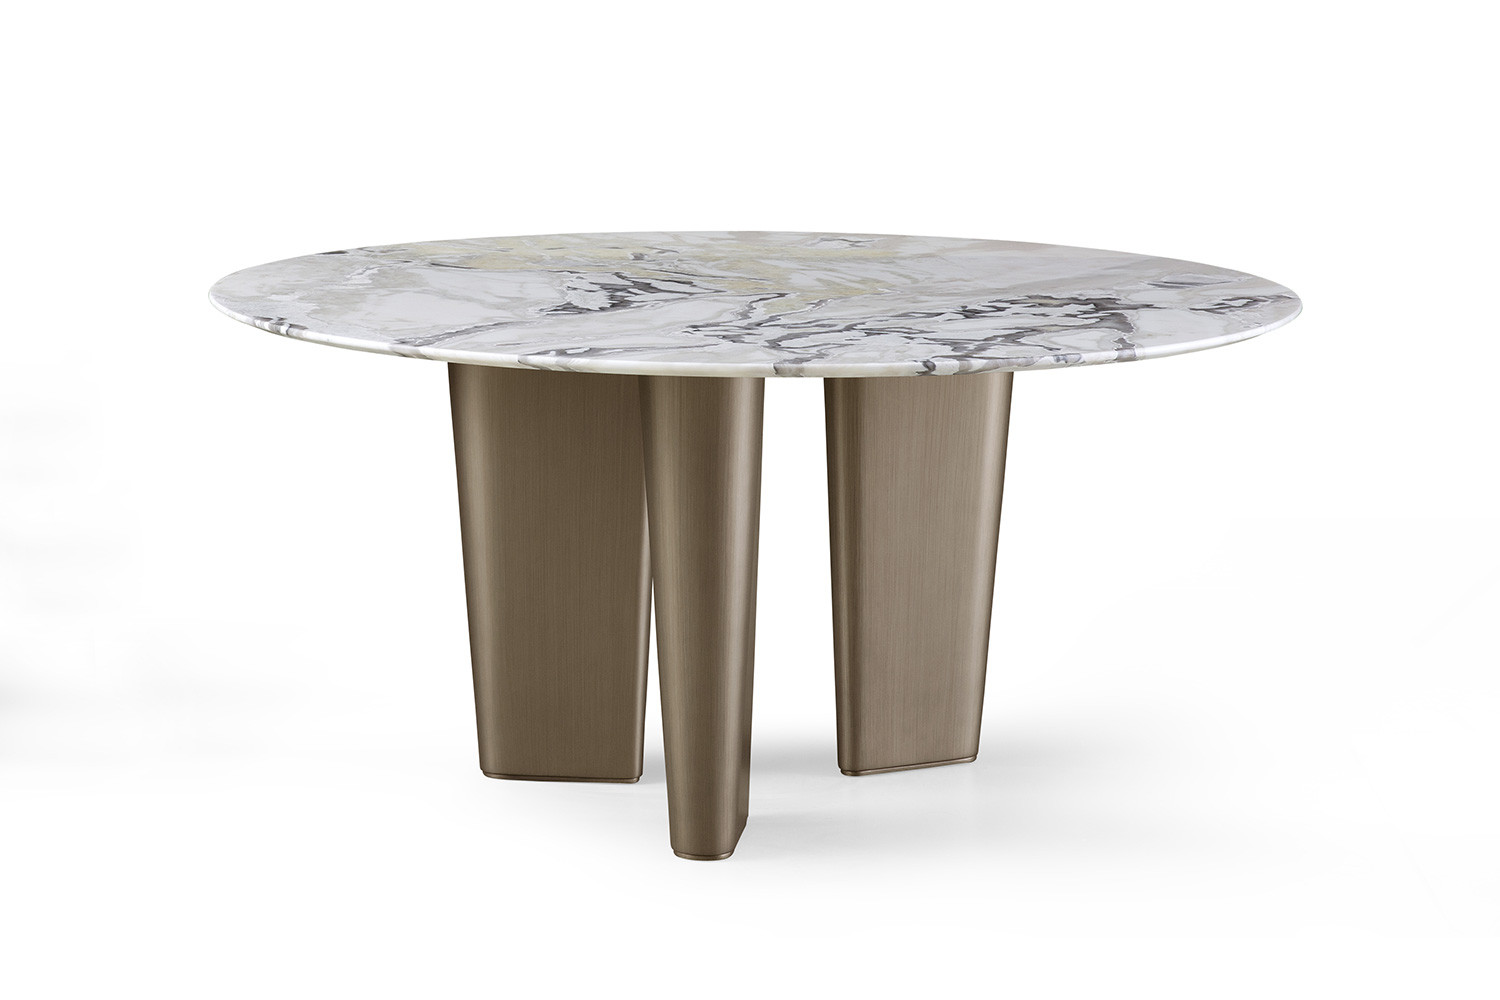 Luxury designer 3 legged marble and brass round dining table Otto